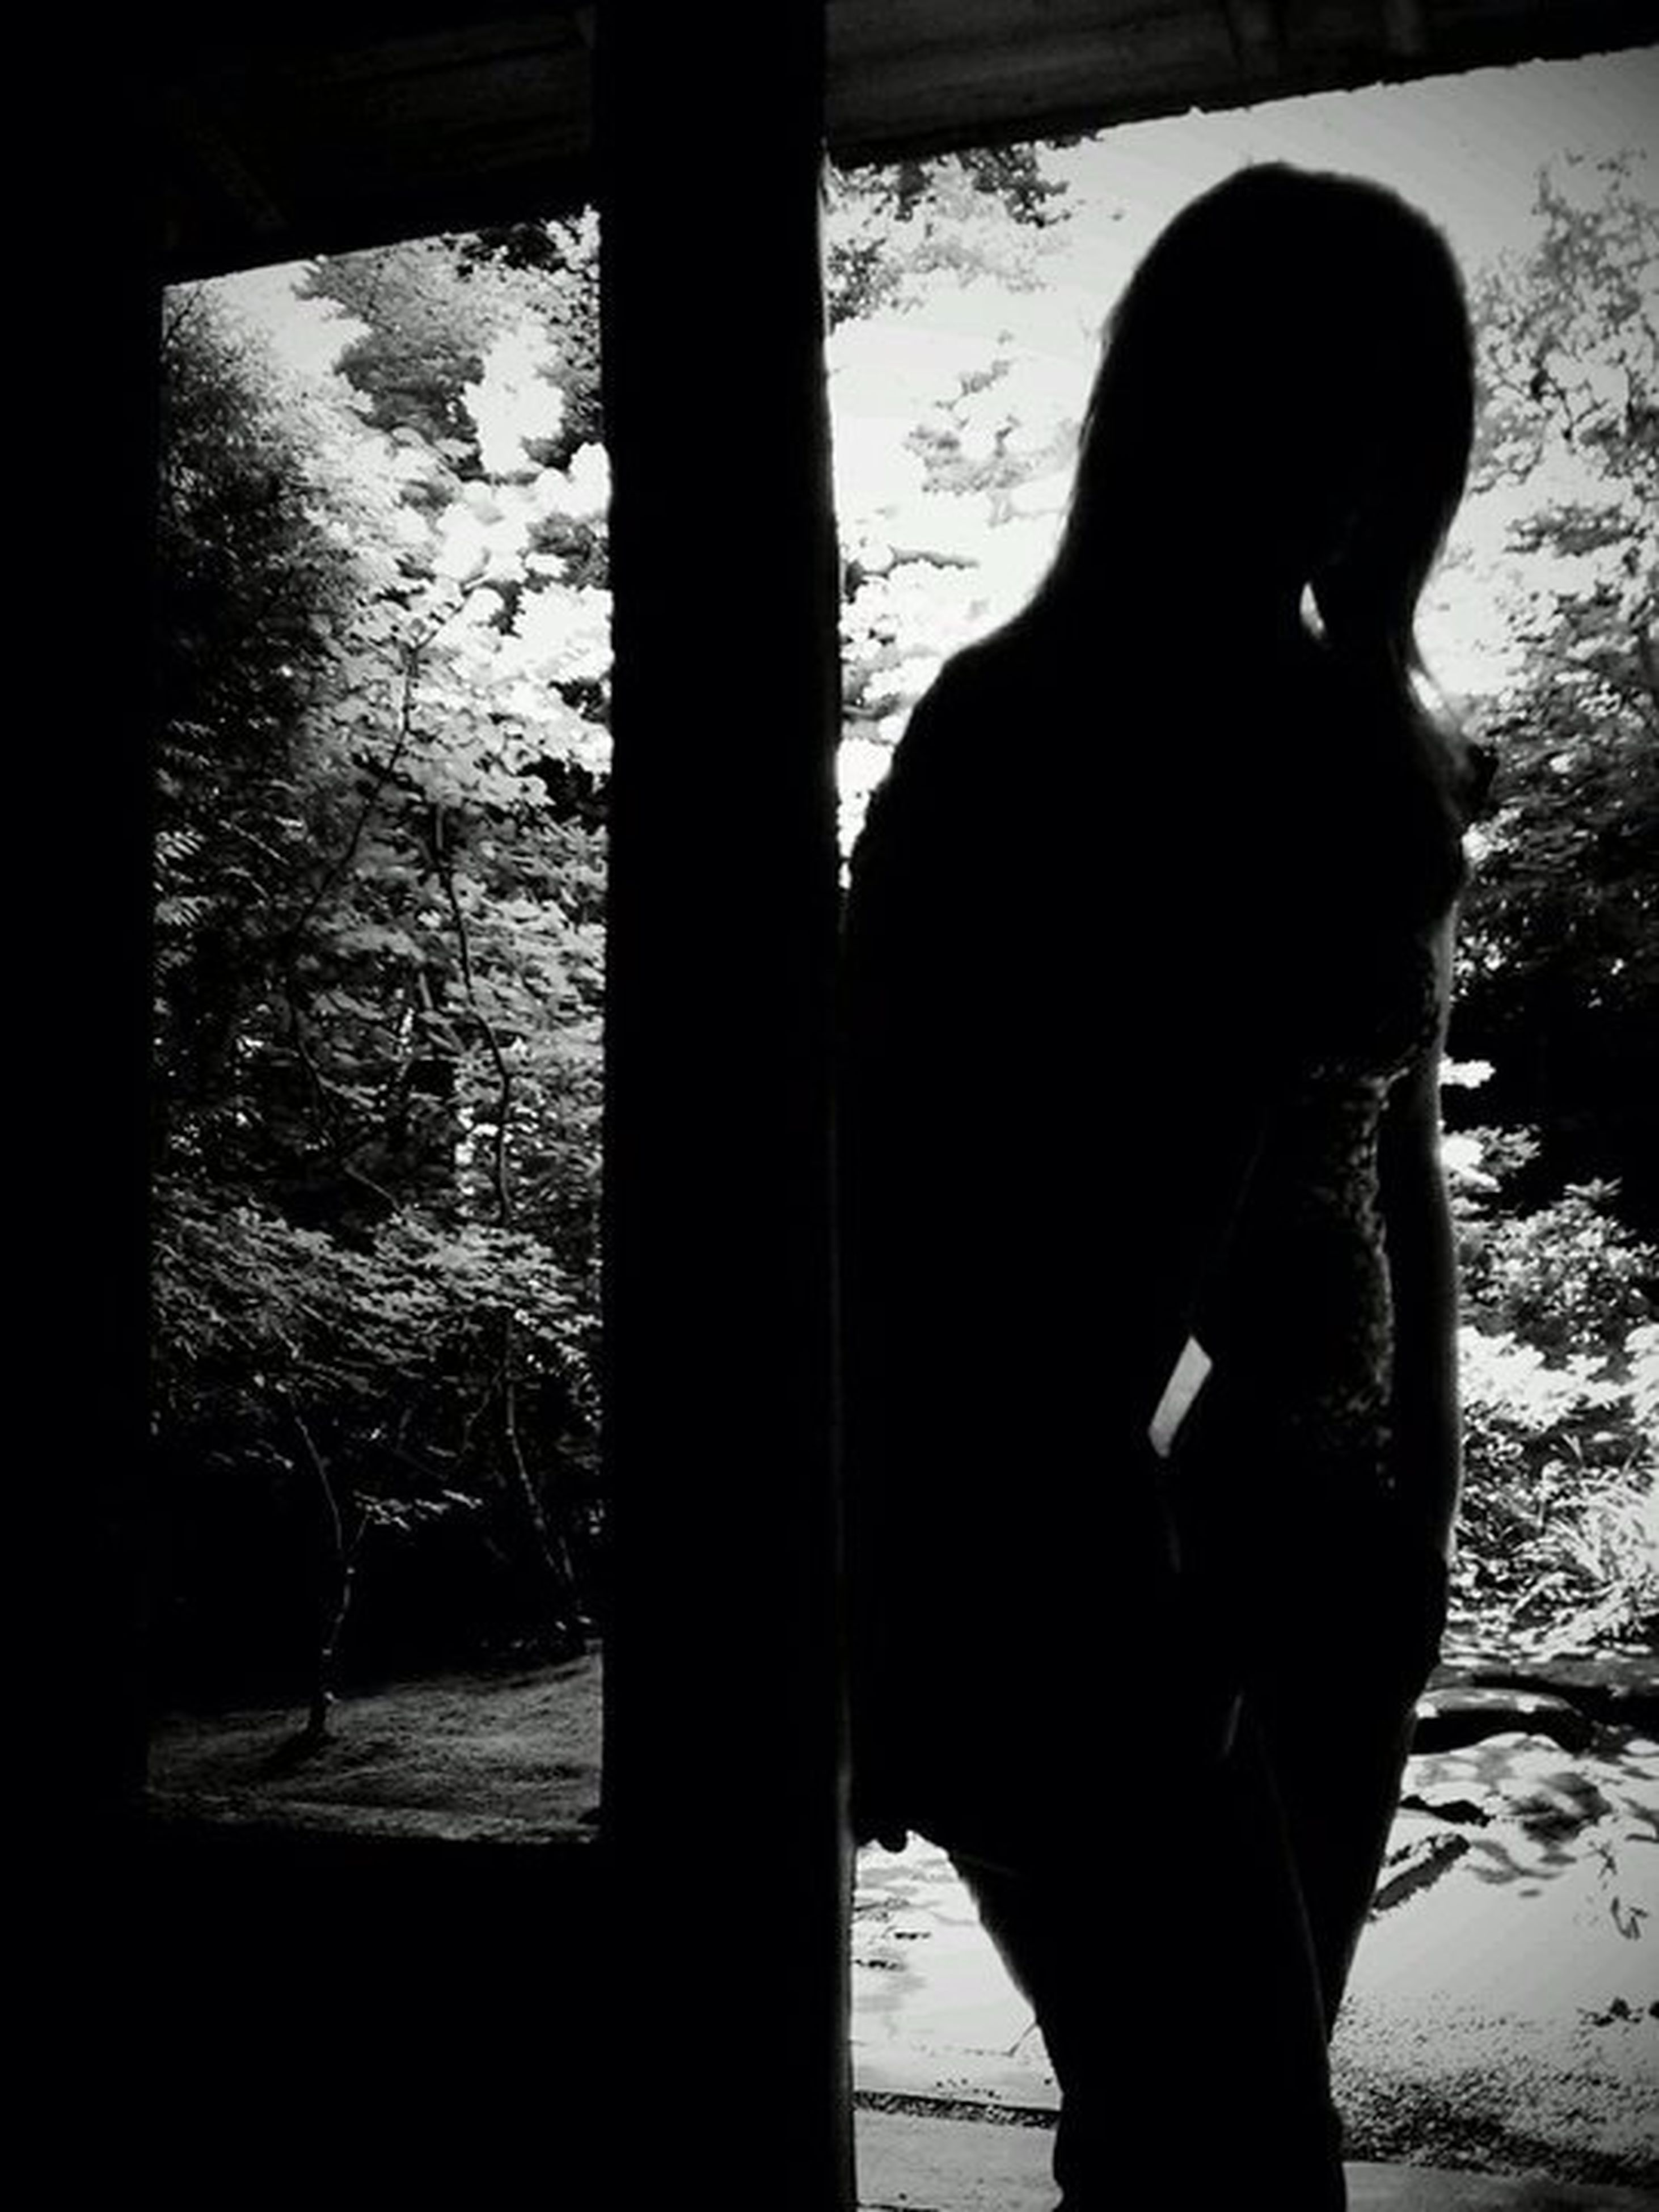 silhouette, standing, lifestyles, rear view, shadow, sunlight, side view, indoors, leisure activity, men, three quarter length, tree, day, full length, tree trunk, person, holding